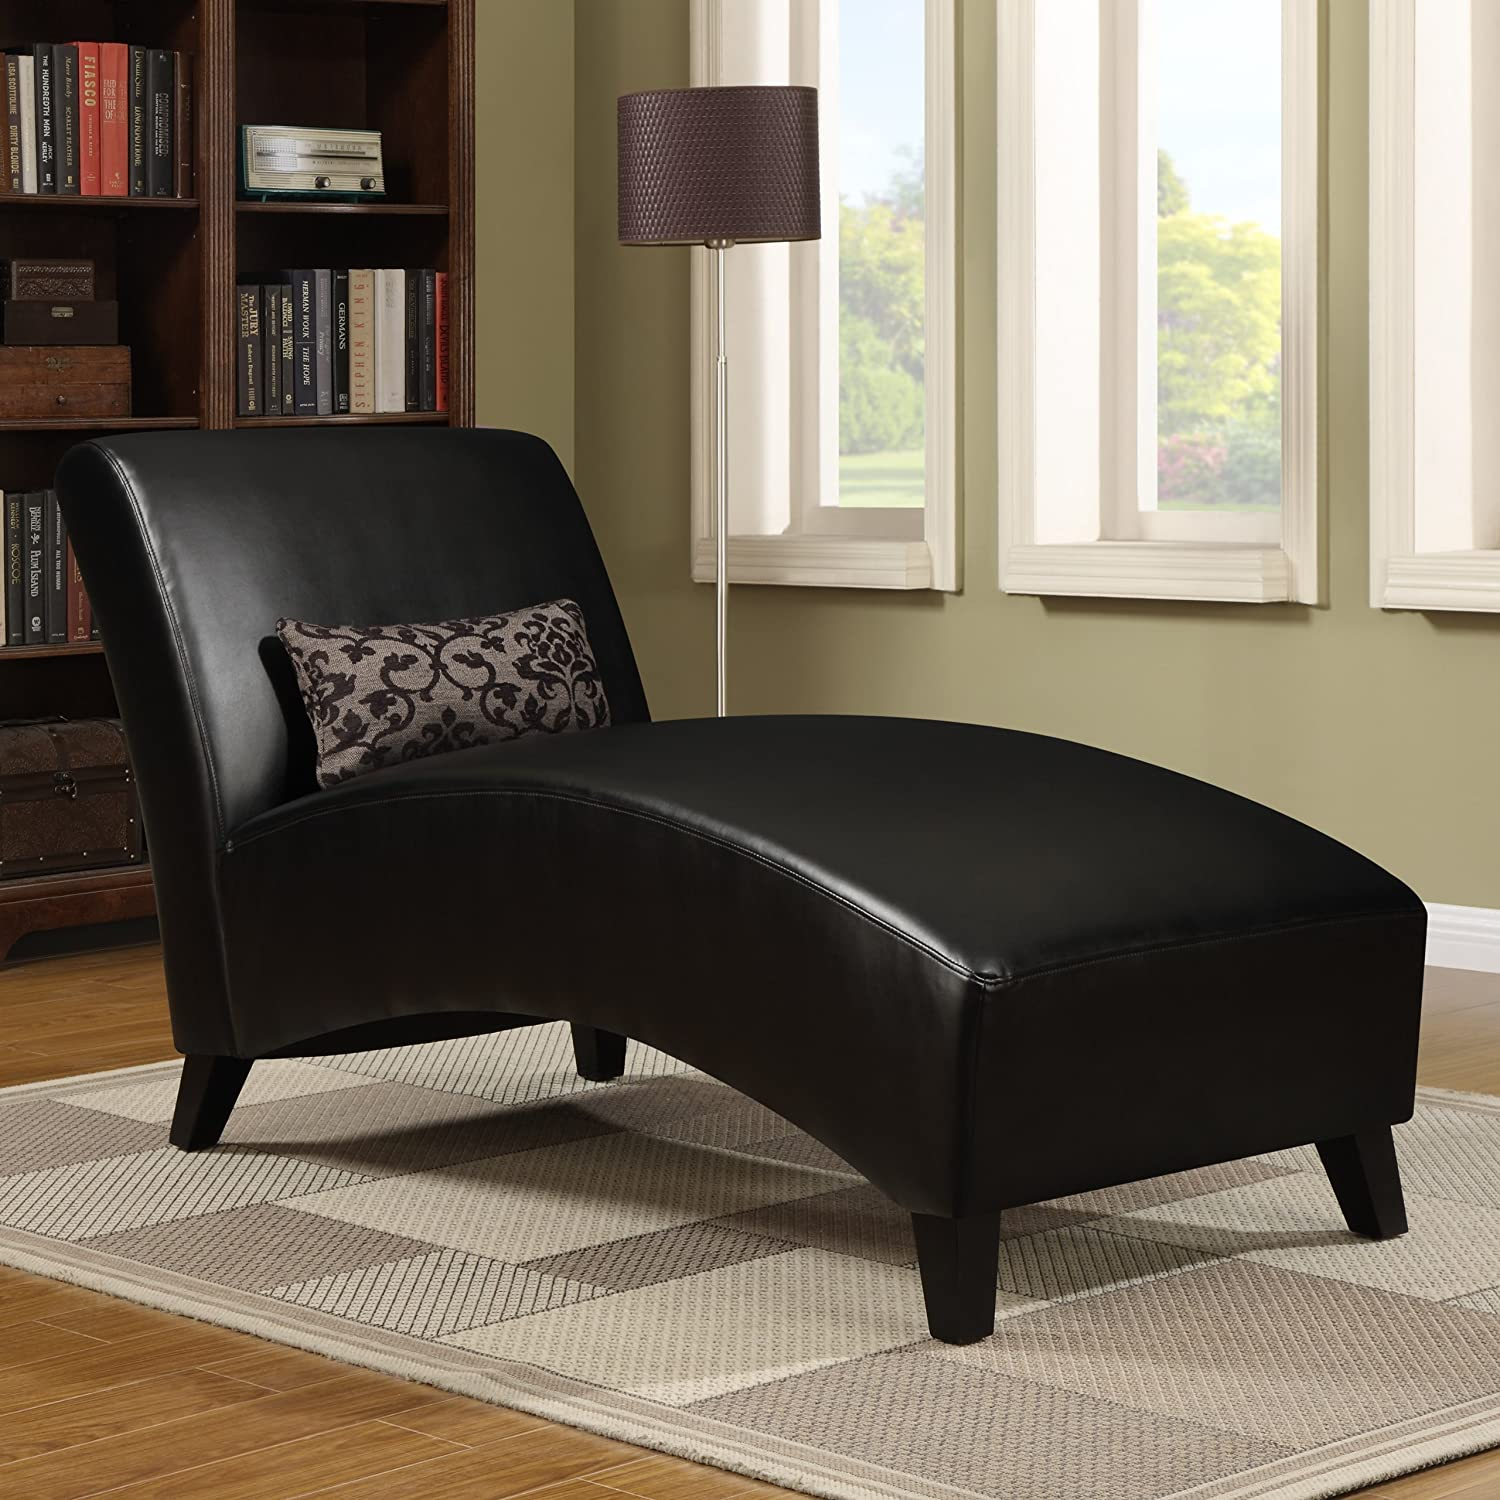 Amazon.com: Handy Living Cara Chaise in Black Renu: Kitchen & Dining